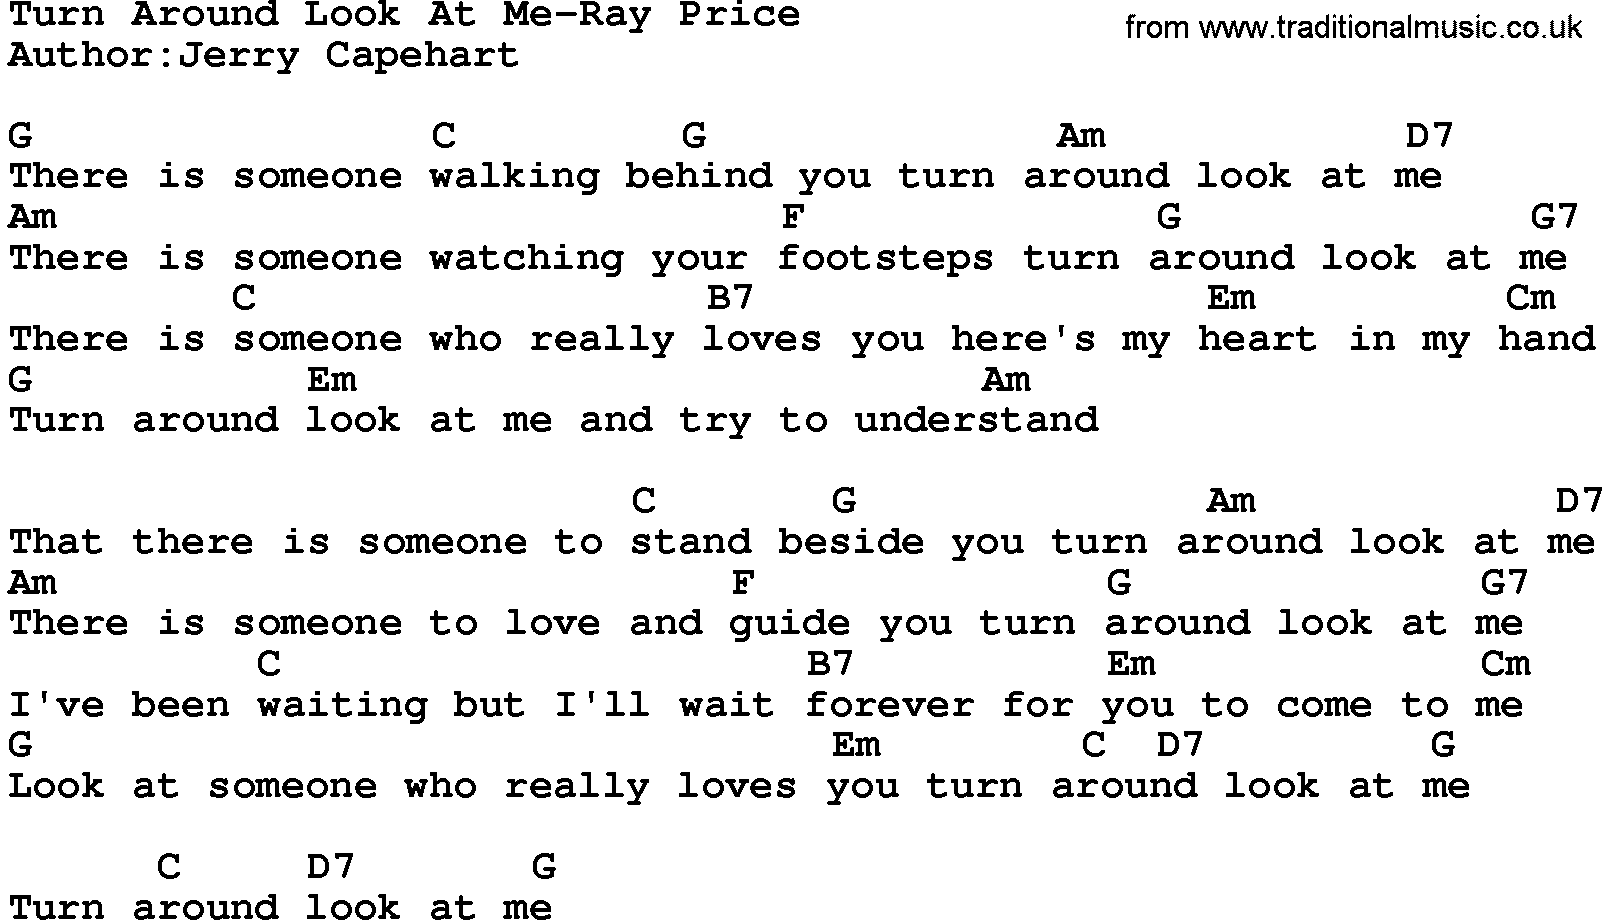 Country musicturn around look at me ray price lyrics and chords hexwebz Images